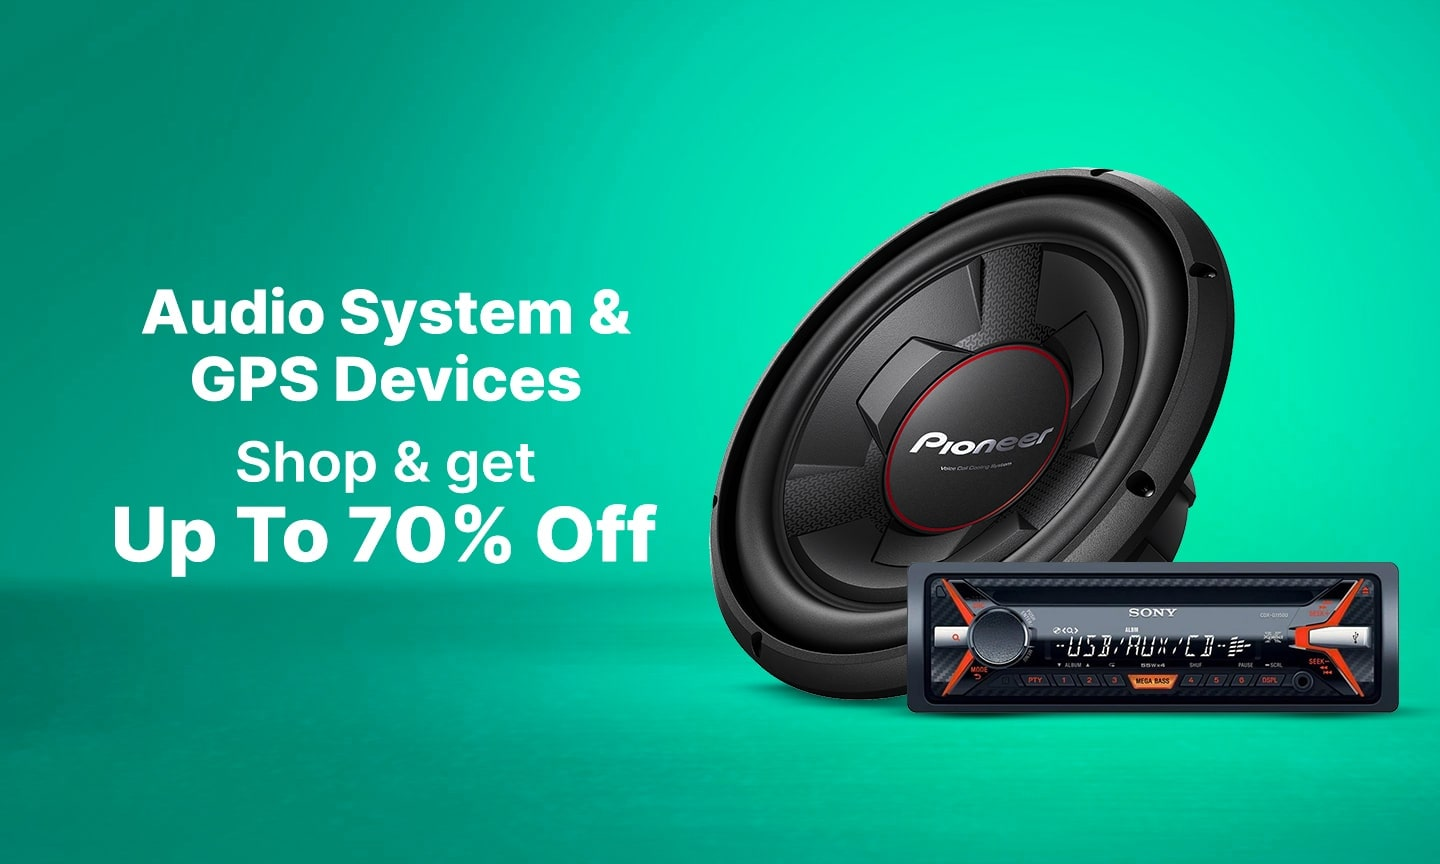 Audio System & GPS Devices  | Upto 70% Off